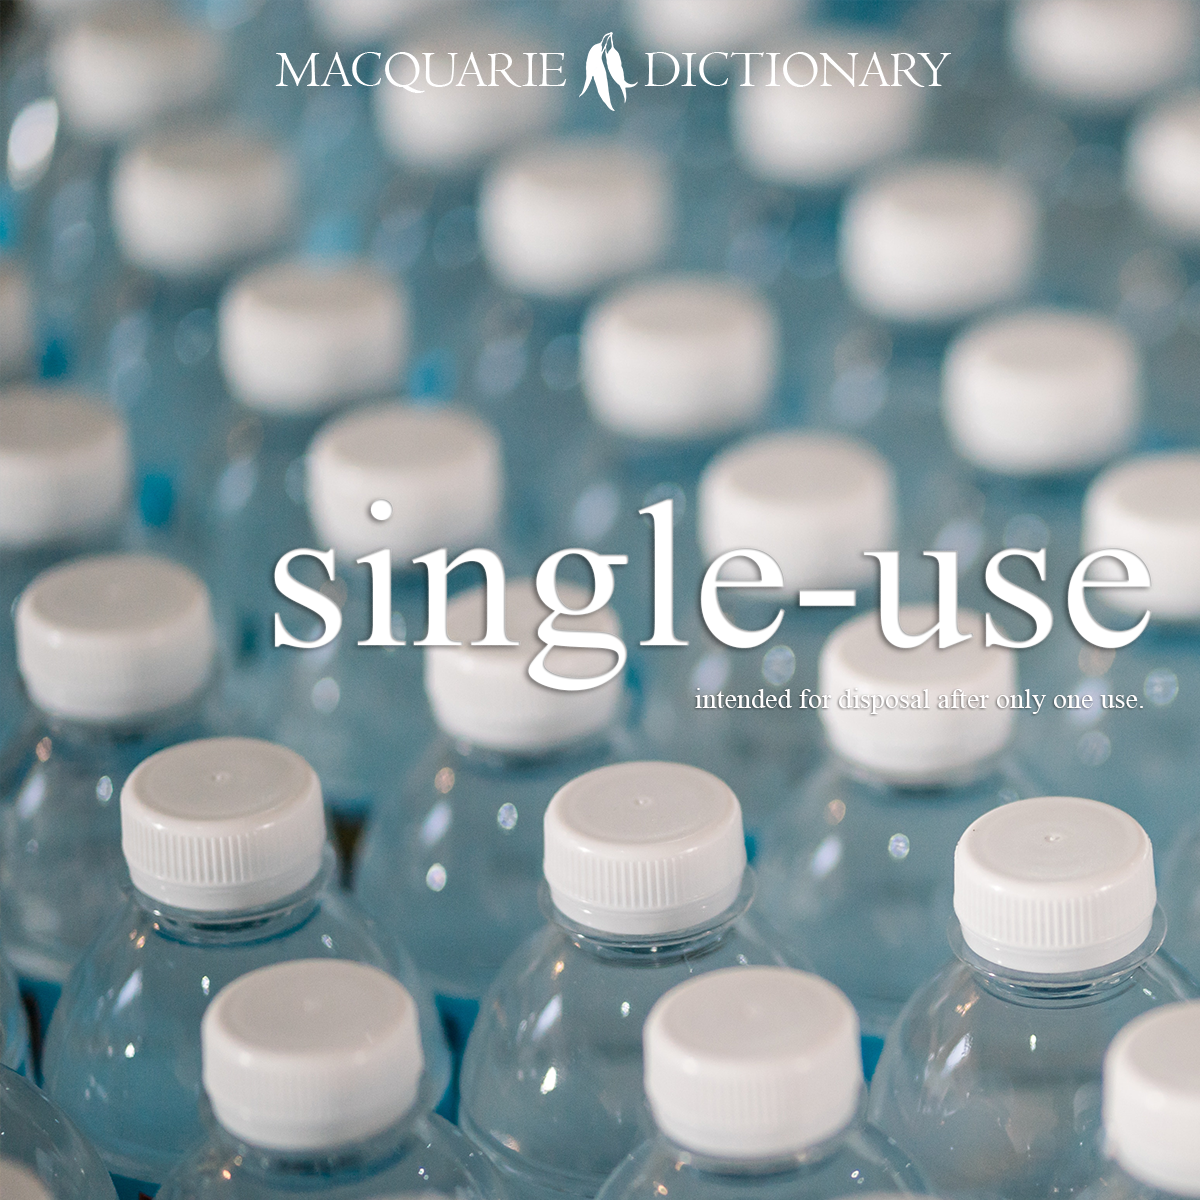 single-use - intended for disposal after only one use: single-use plastic bag; single-use cup.